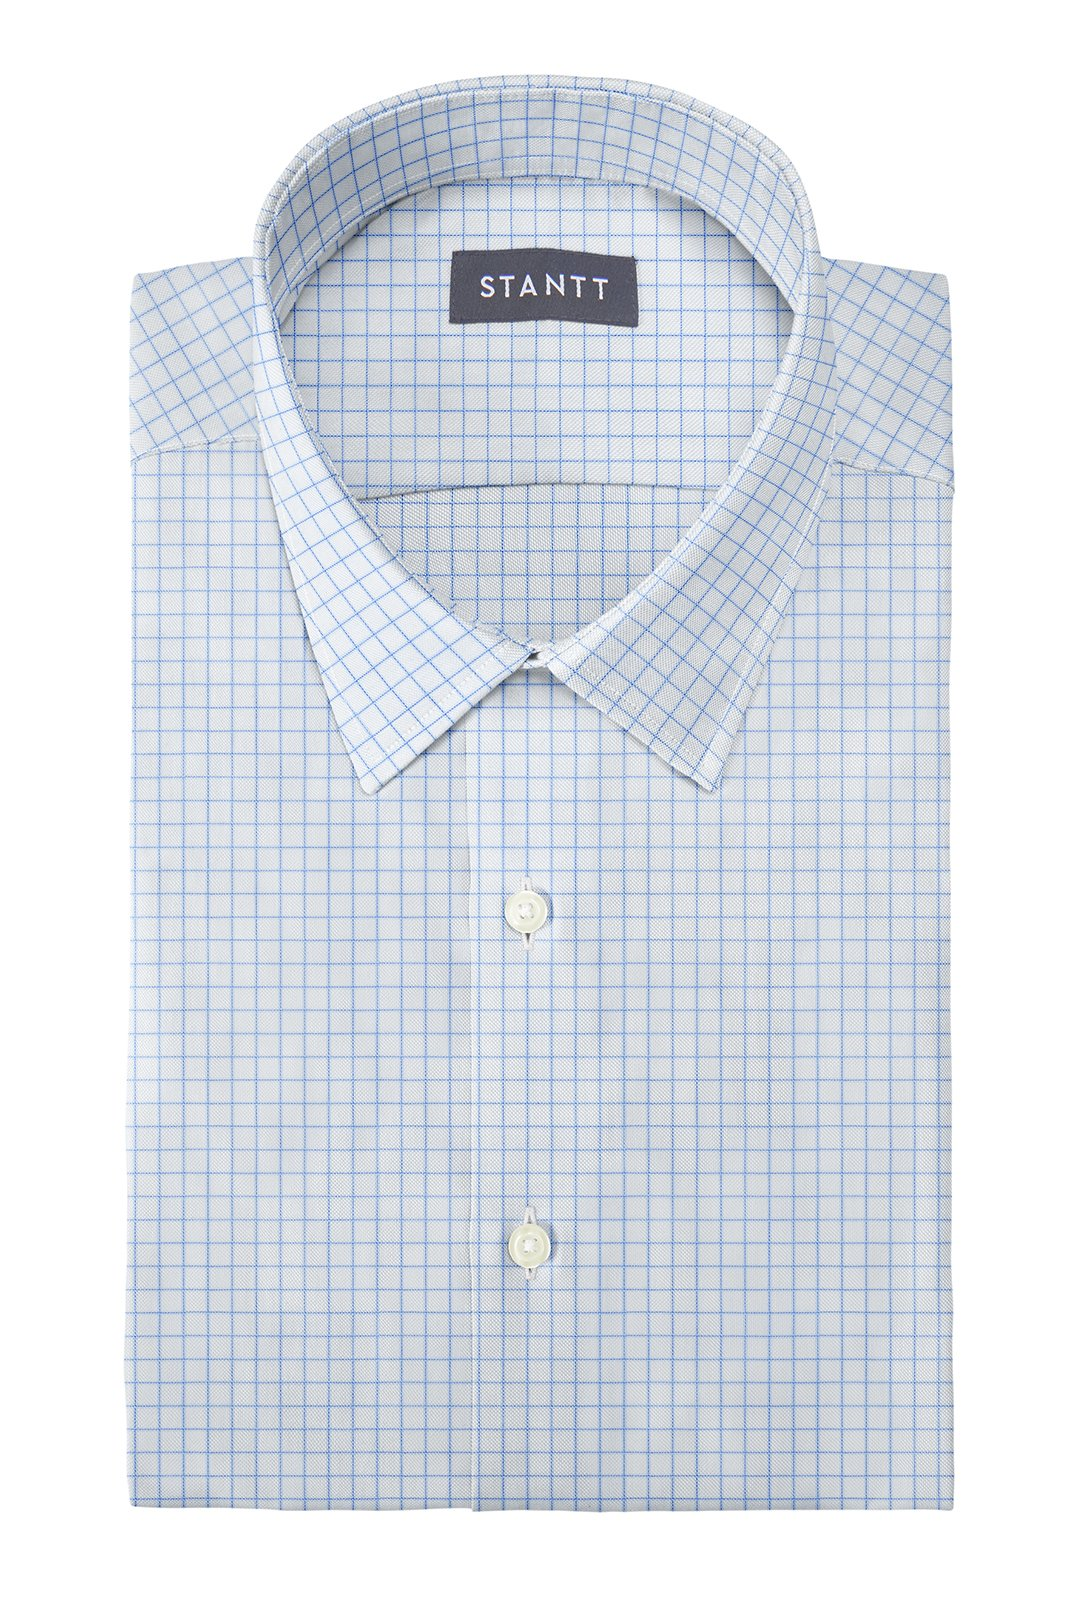 Light Blue Windowpane: Semi-Spread Collar, French Cuff